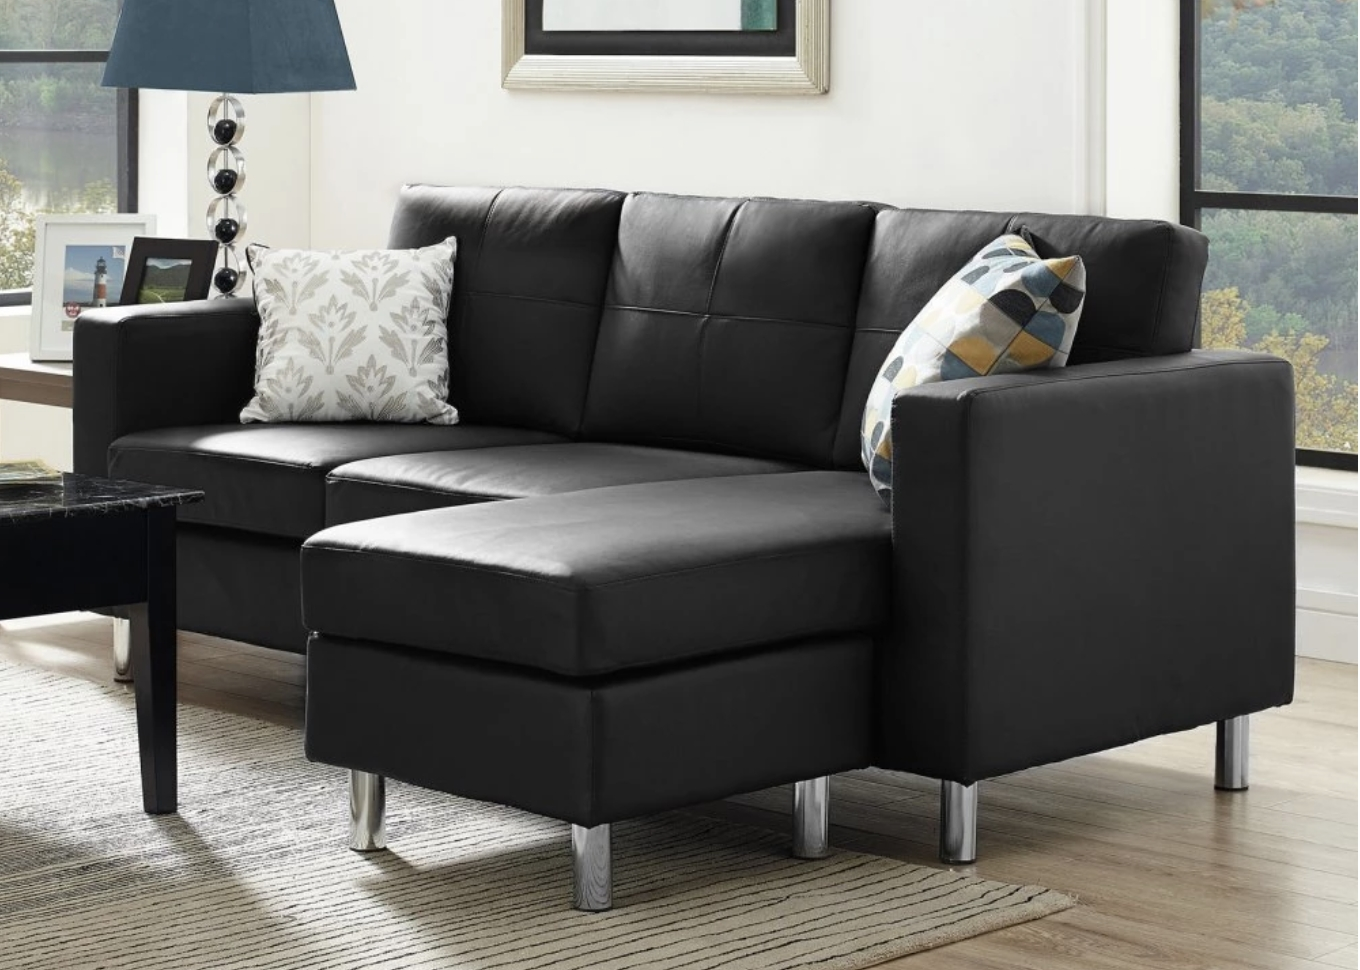 Sectional Sofas That Can Be Rearranged Intended For Widely Used 75 Modern Sectional Sofas For Small Spaces (2018) (View 13 of 15)